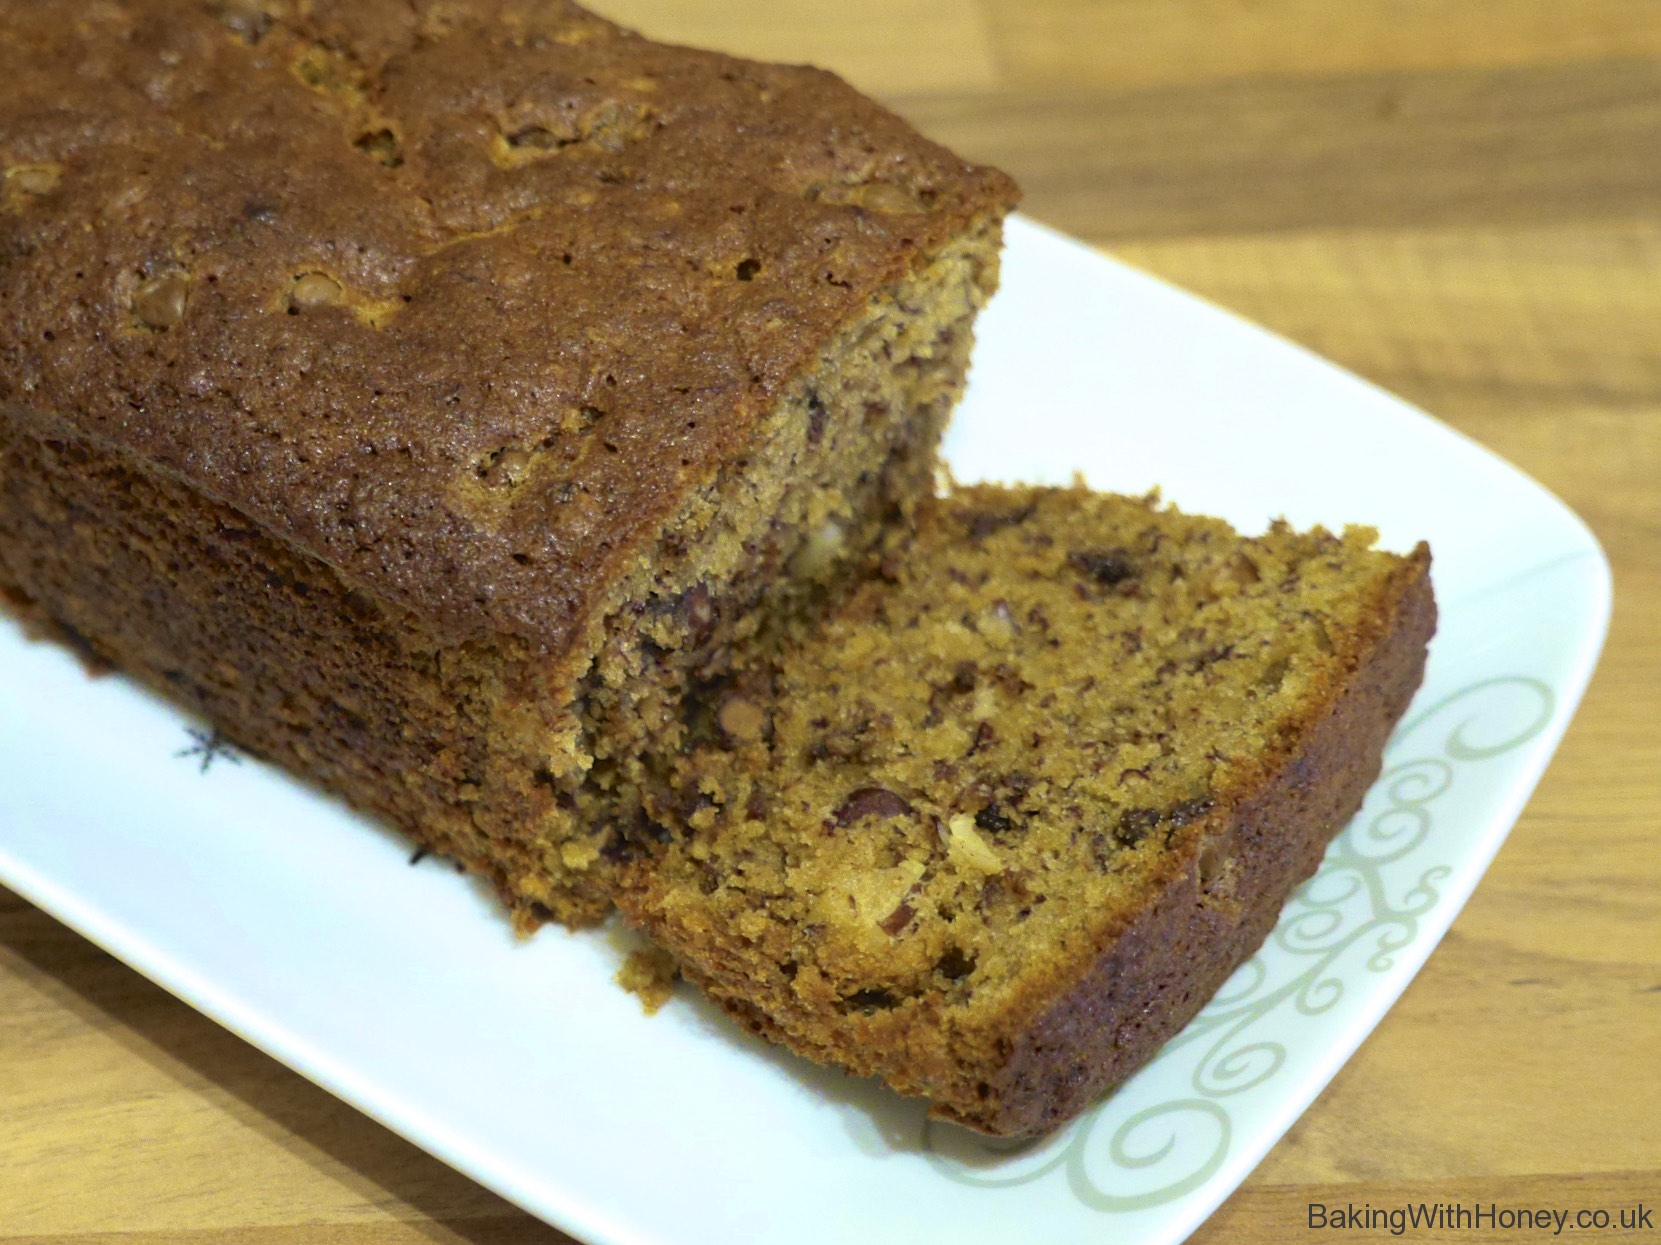 Chocolate & Brazil Nut Banana Loaf